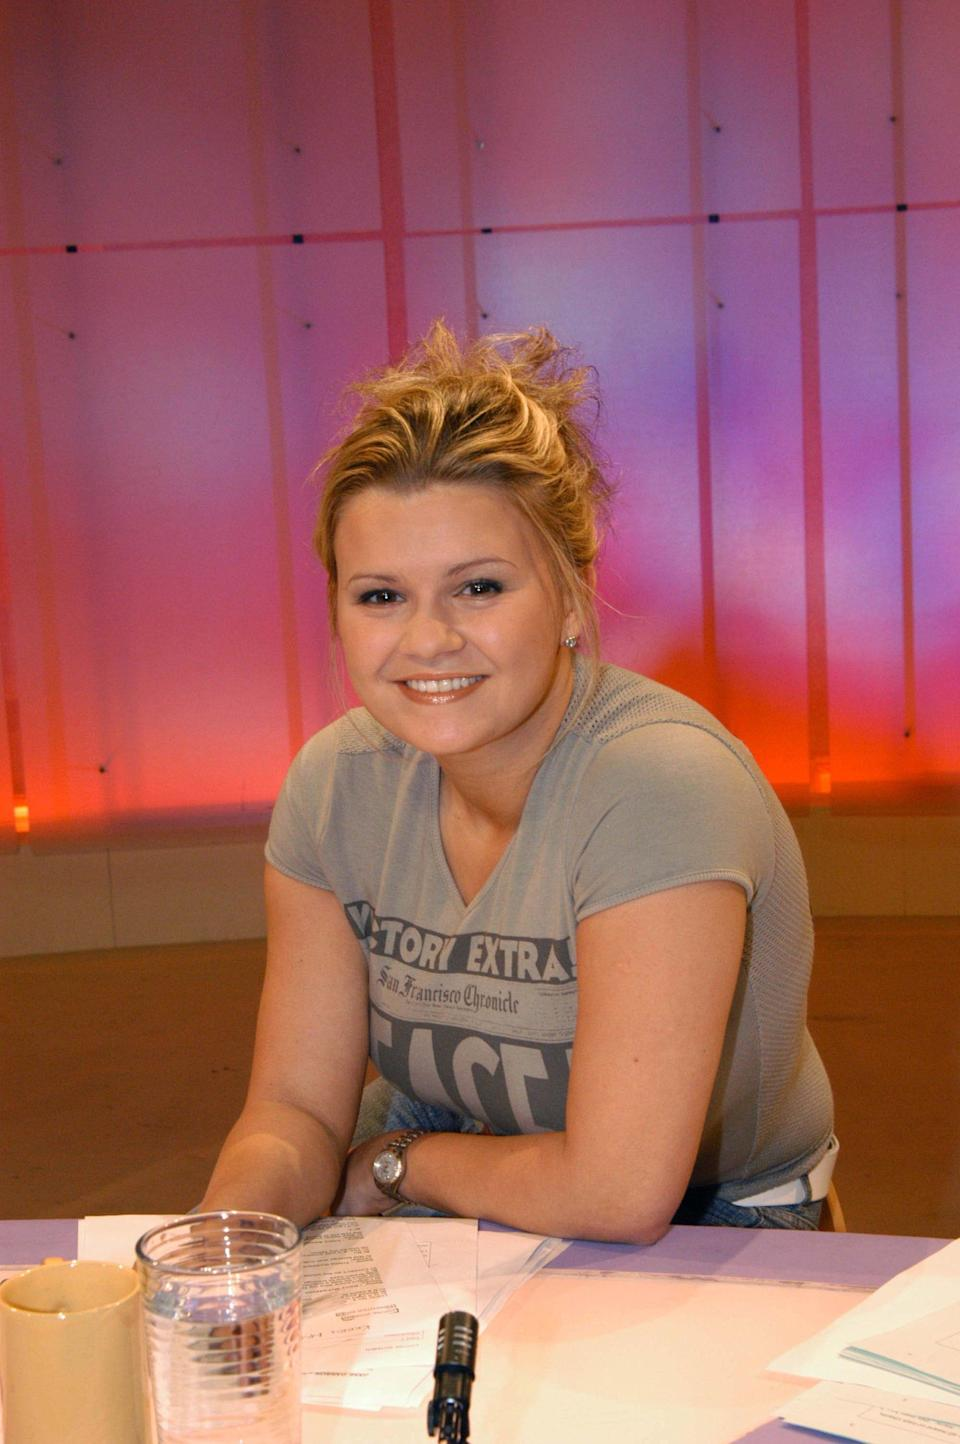 Back when she was Kerry McFadden (those were the days, eh?), the Atomic Kitten singer appeared as a panelist between 2003 and 2004.<br /><br />She was only 23 when she joined the show, making her the youngest Loose Woman regular ever, and her sometimes naive outlook on life meant she often clashed with Sherrie Hewson, providing many hilarious moments.